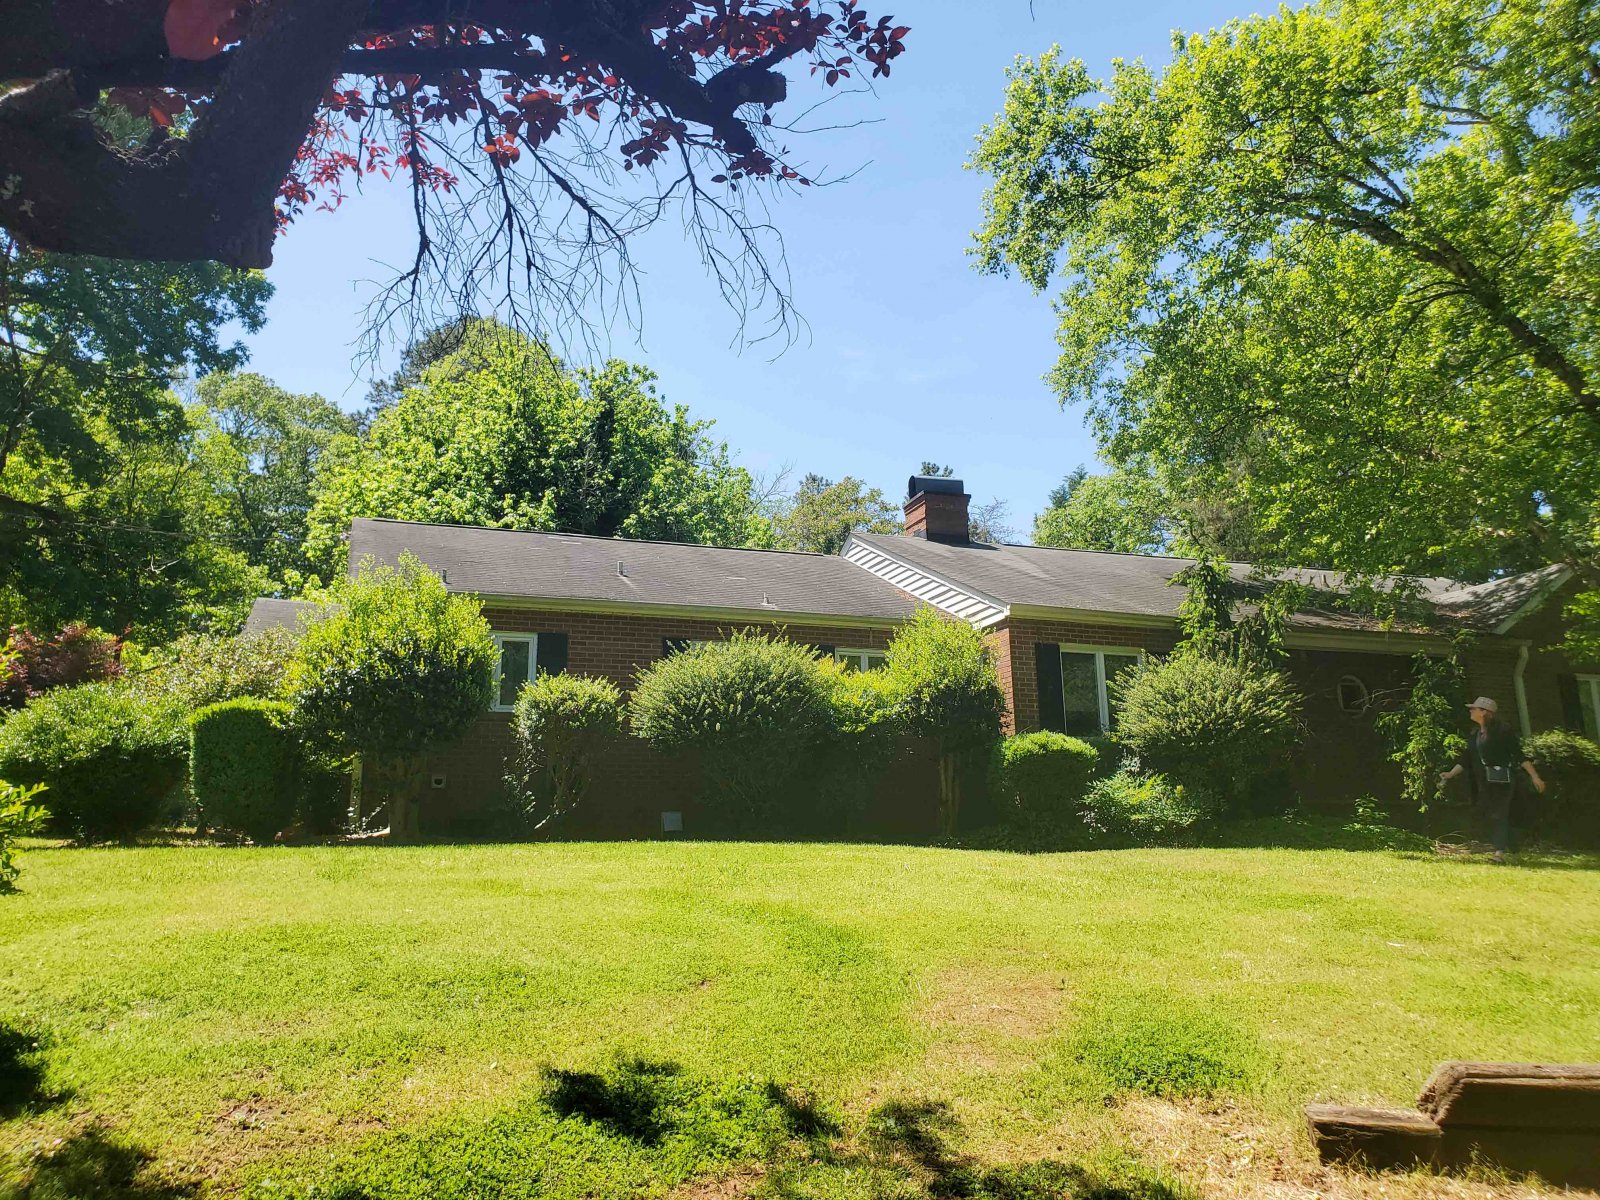 triad discount homes off market property Winston Salem NC High Equity Fliptriad discount homes off market property for sale Winston Salem NC